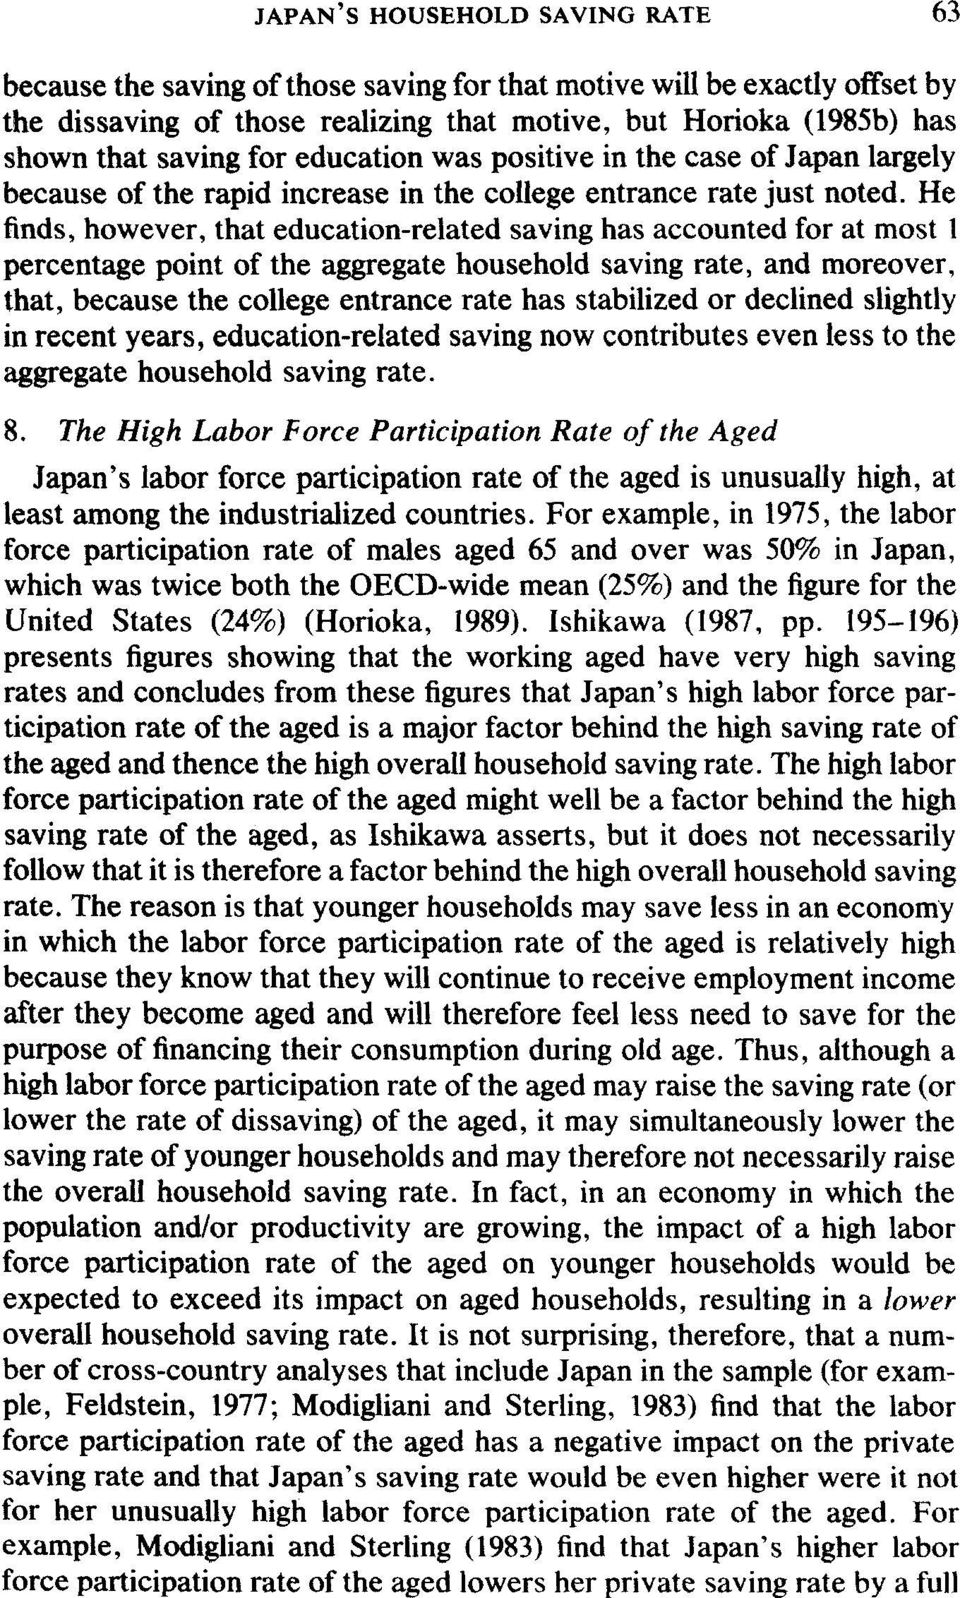 He finds, however, that education-related saving has accounted for at most 1 percentage point of the aggregate household saving rate, and moreover, that, because the college entrance rate has